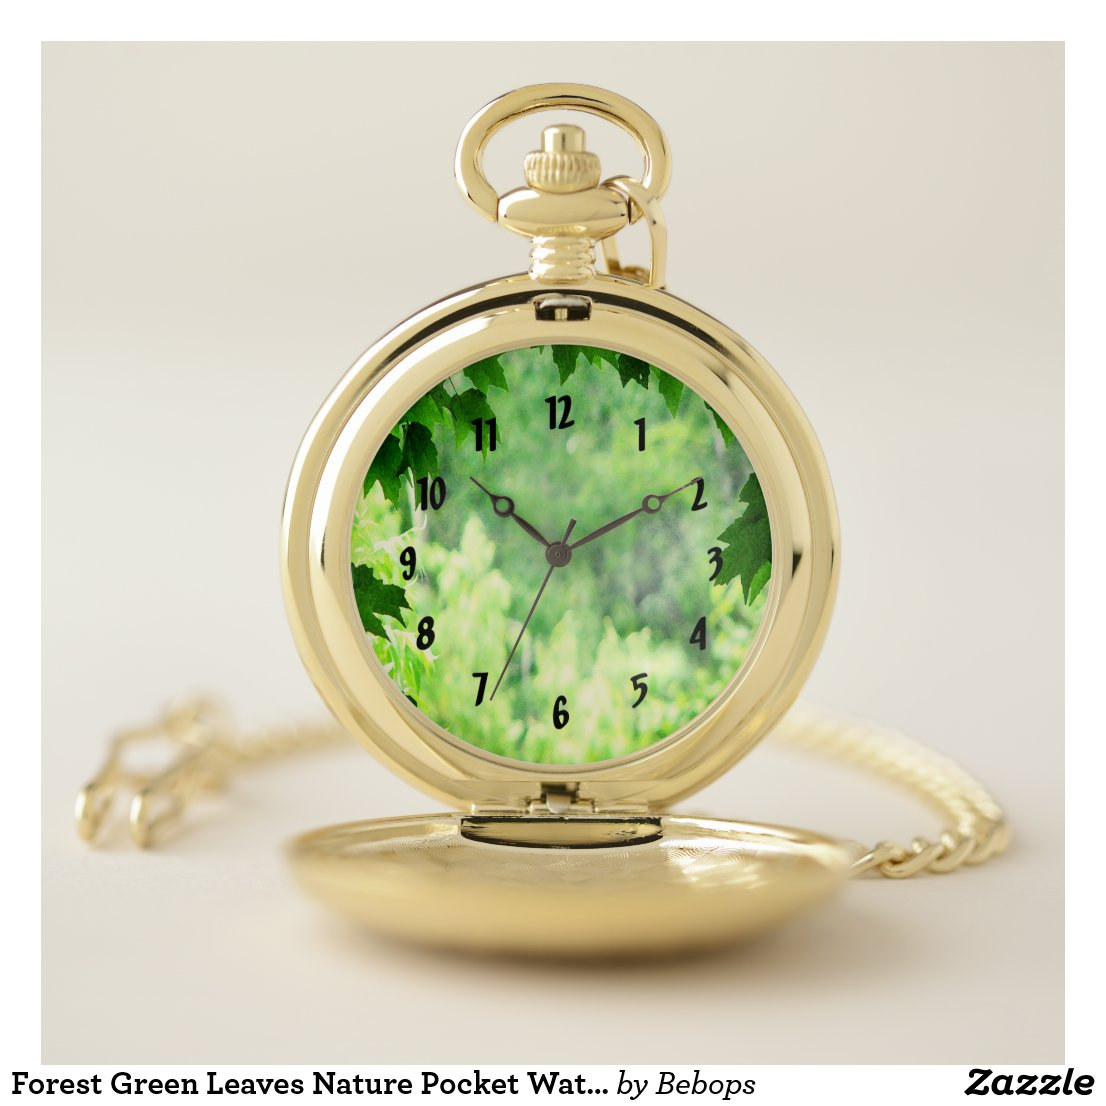 Forest Green Leaves Nature Pocket Watch